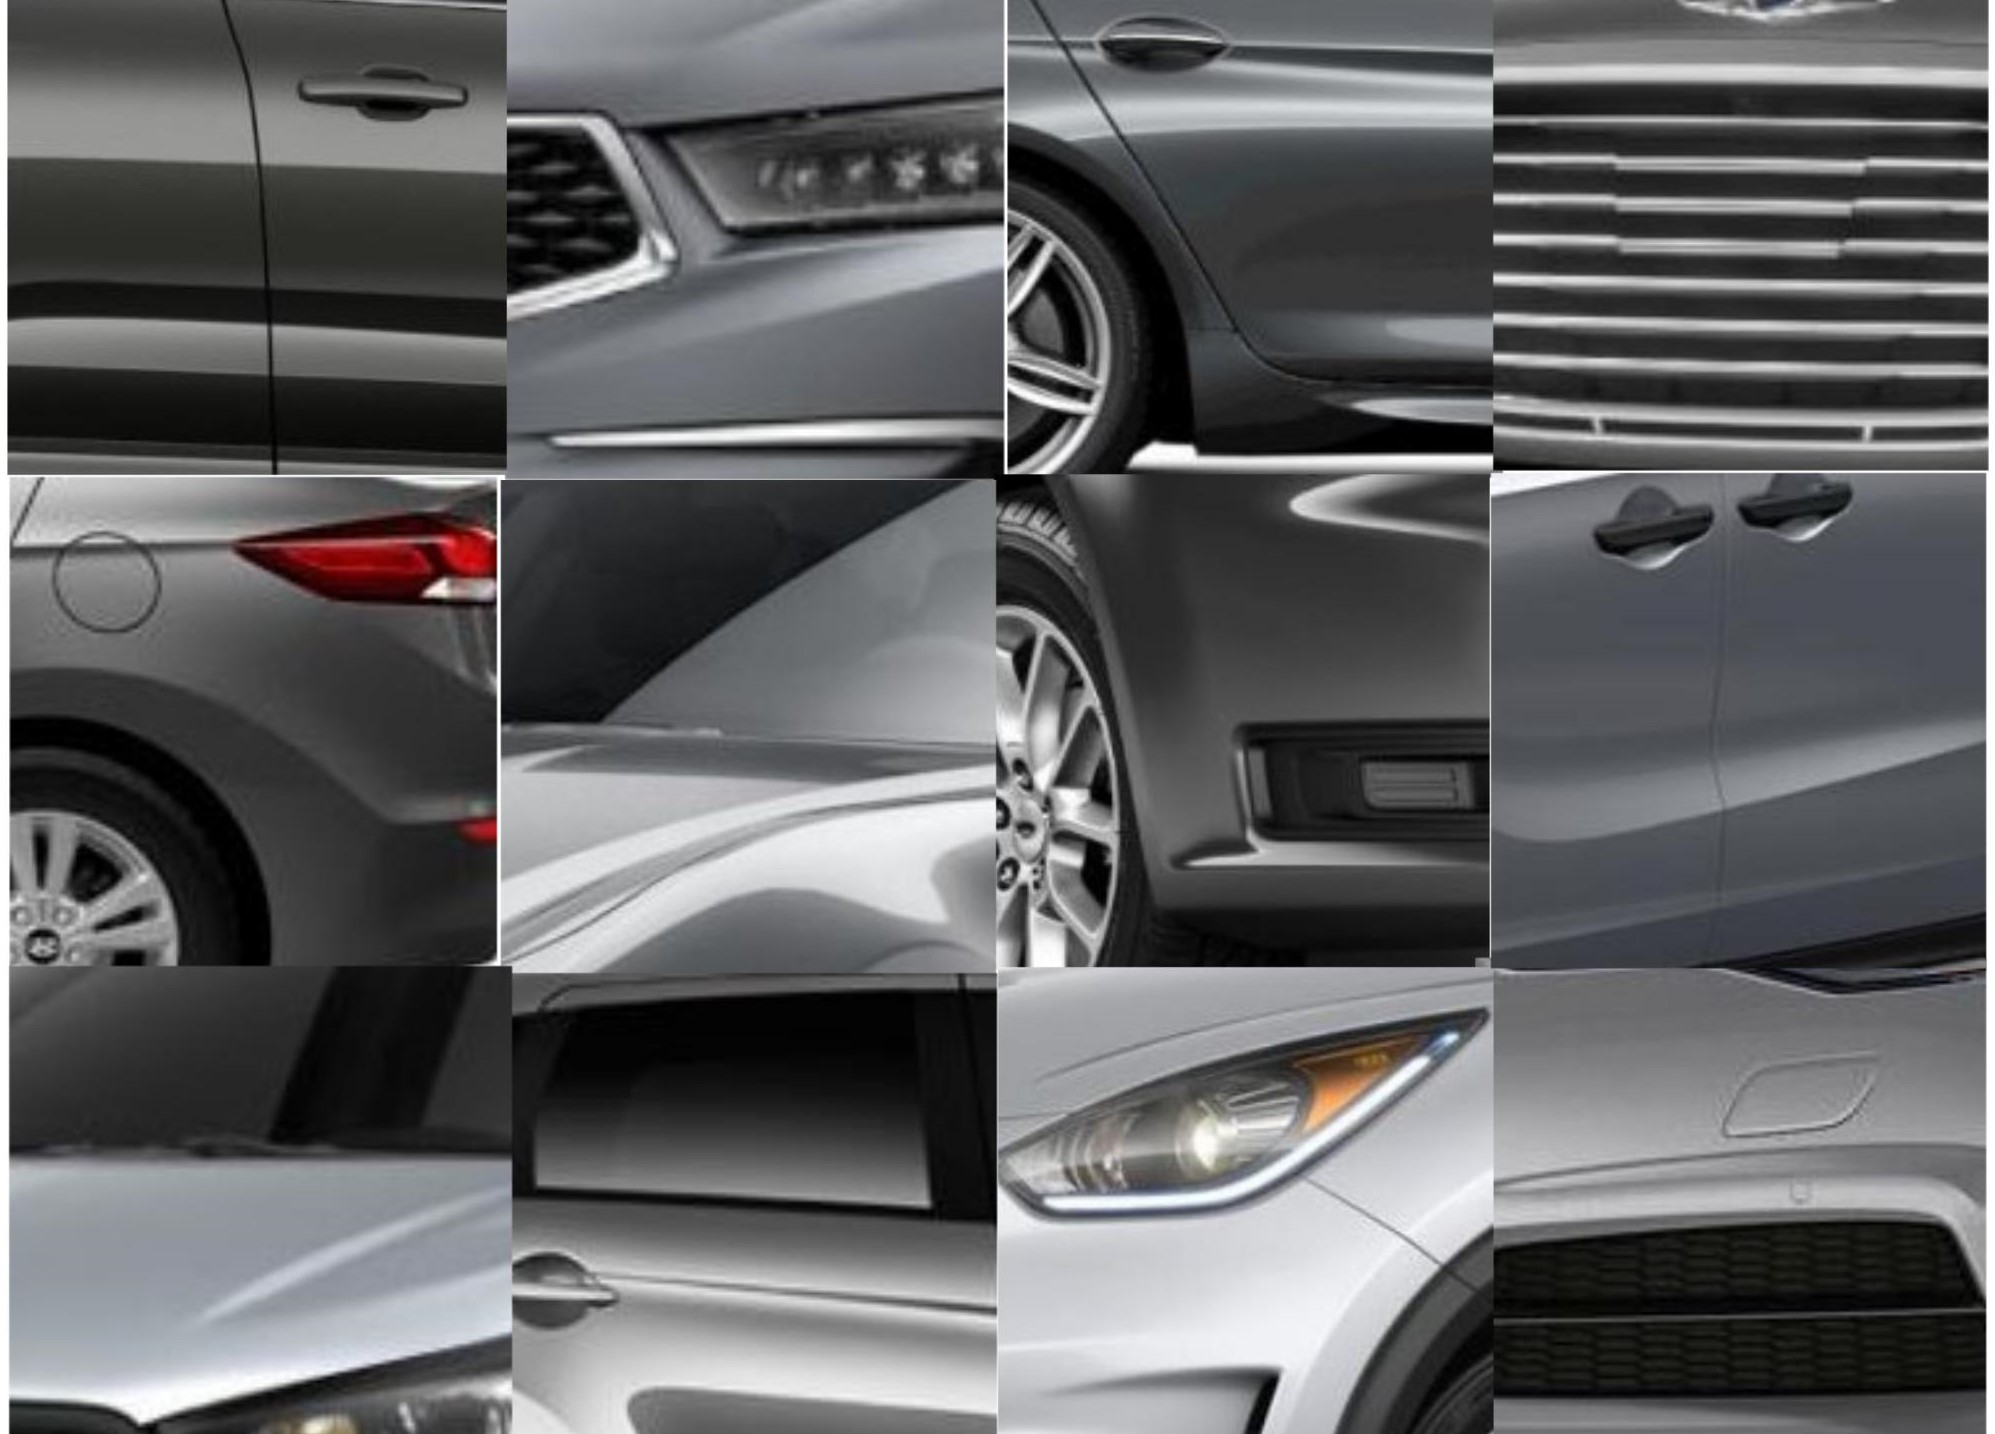 Paint Colors For Cars >> 50 Shades Of Grey Cars 2018 Vehicles Available In Sexy Silver Hues